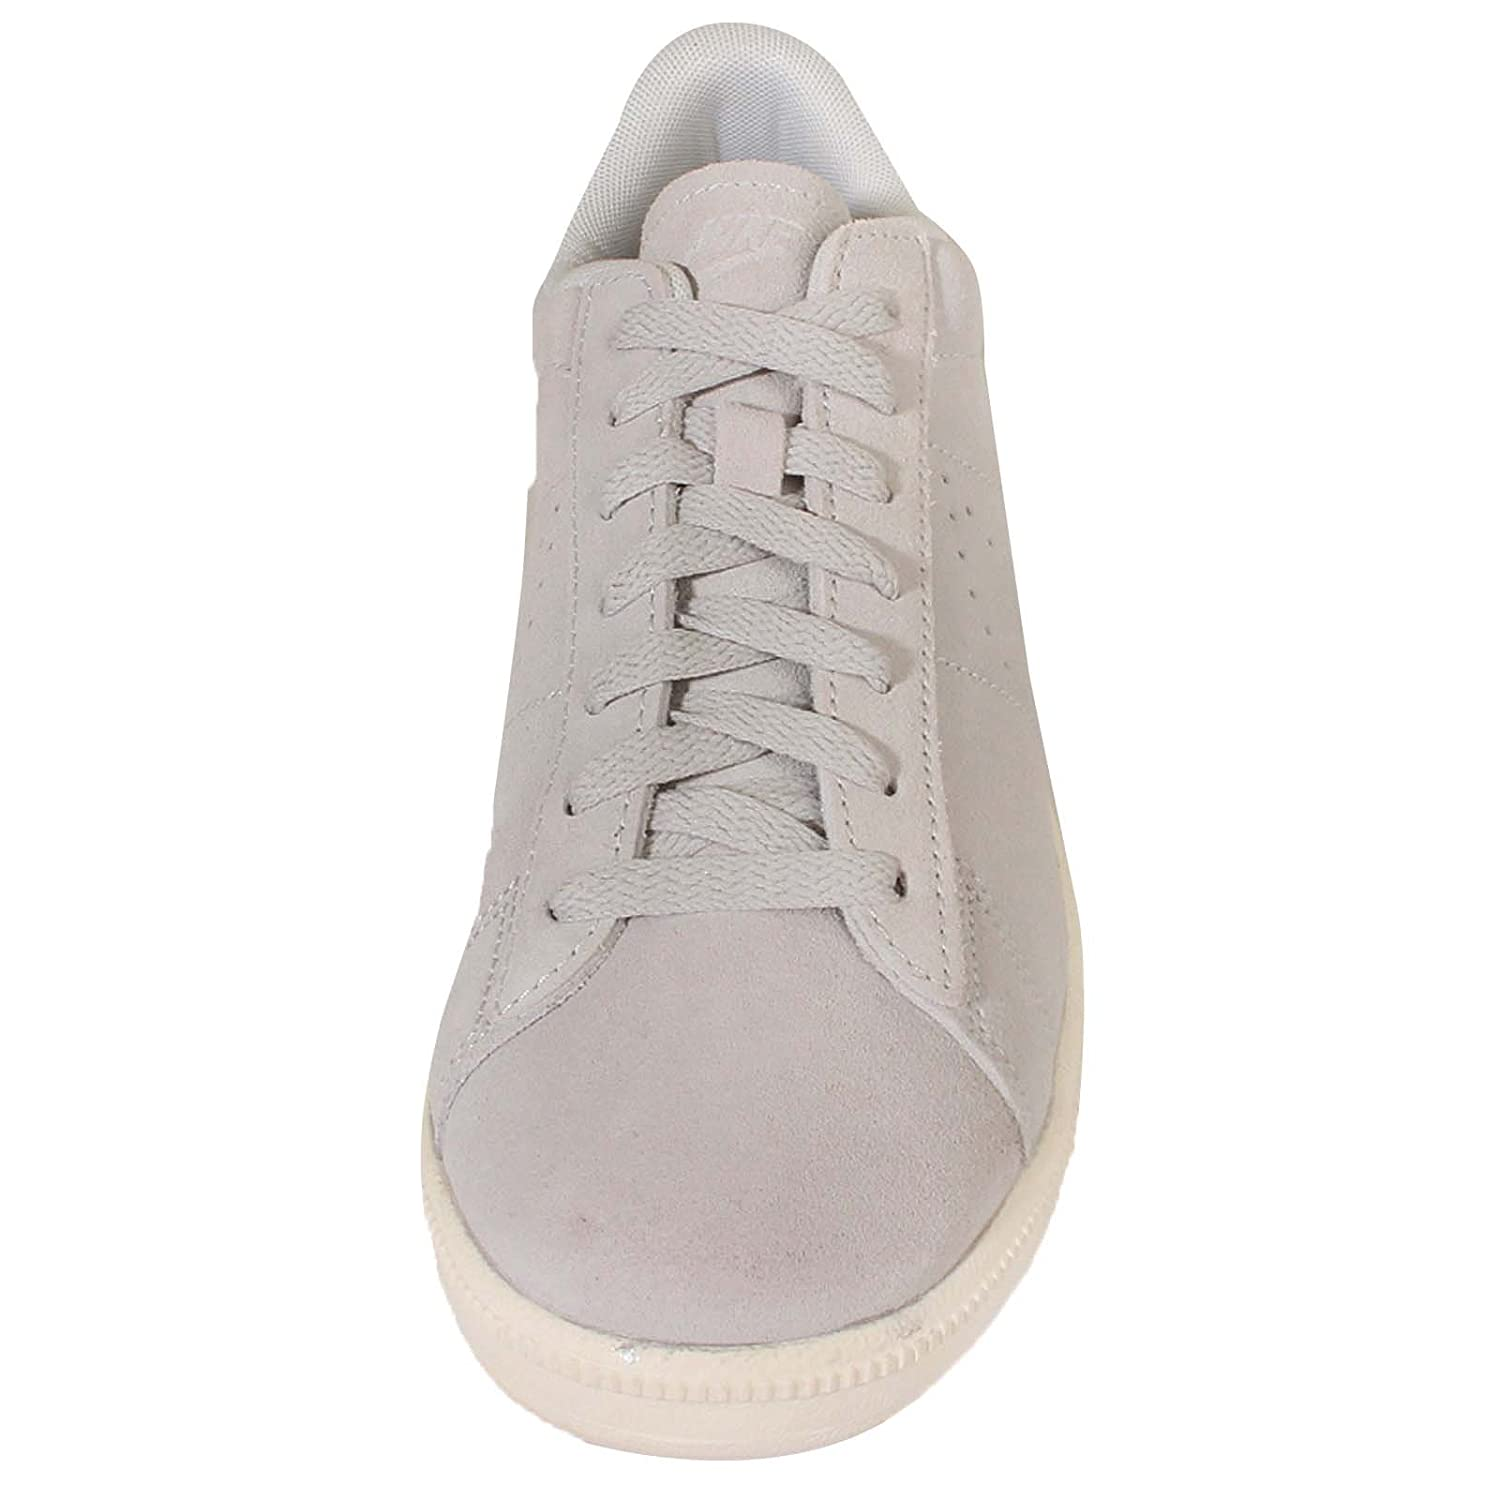 wholesale dealer 79dec ee62b Athletic Shoes Nike Tennis Classic CS Suede mens Trainers 829351 001 Sneakers  Shoes